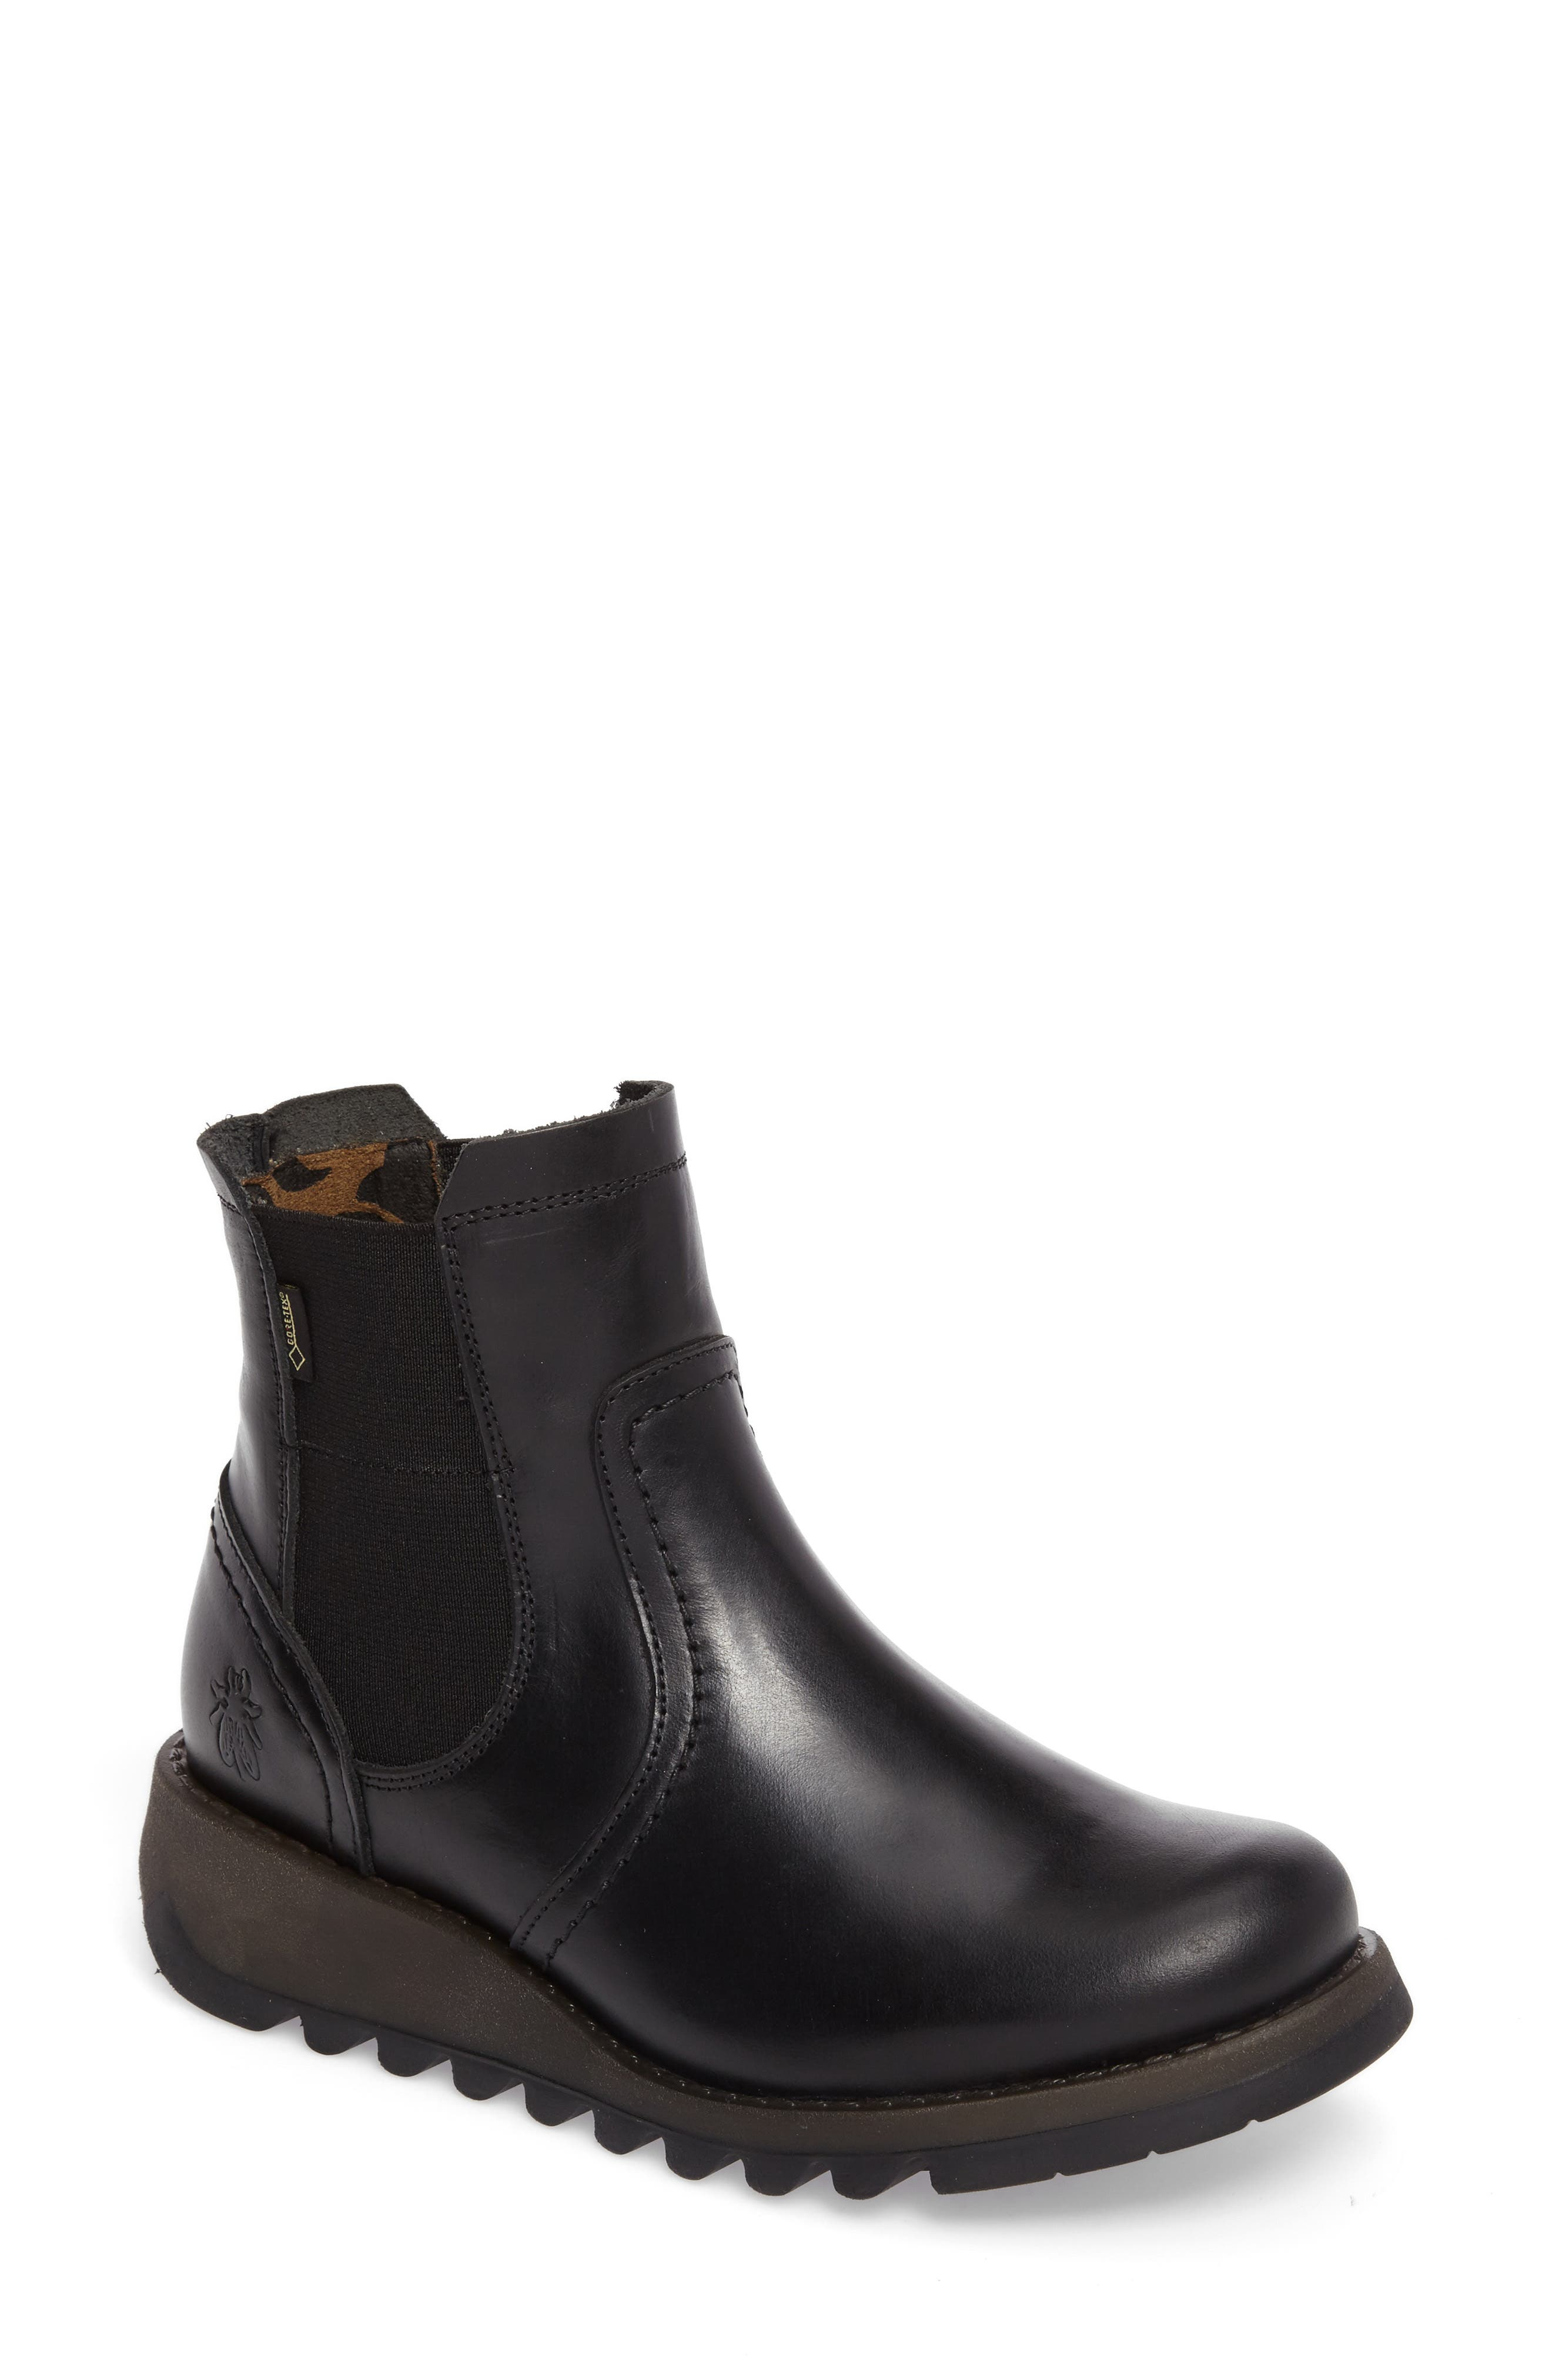 Scon Waterproof Gore-Tex<sup>®</sup> Chelsea Boot,                         Main,                         color, BLACK LEATHER